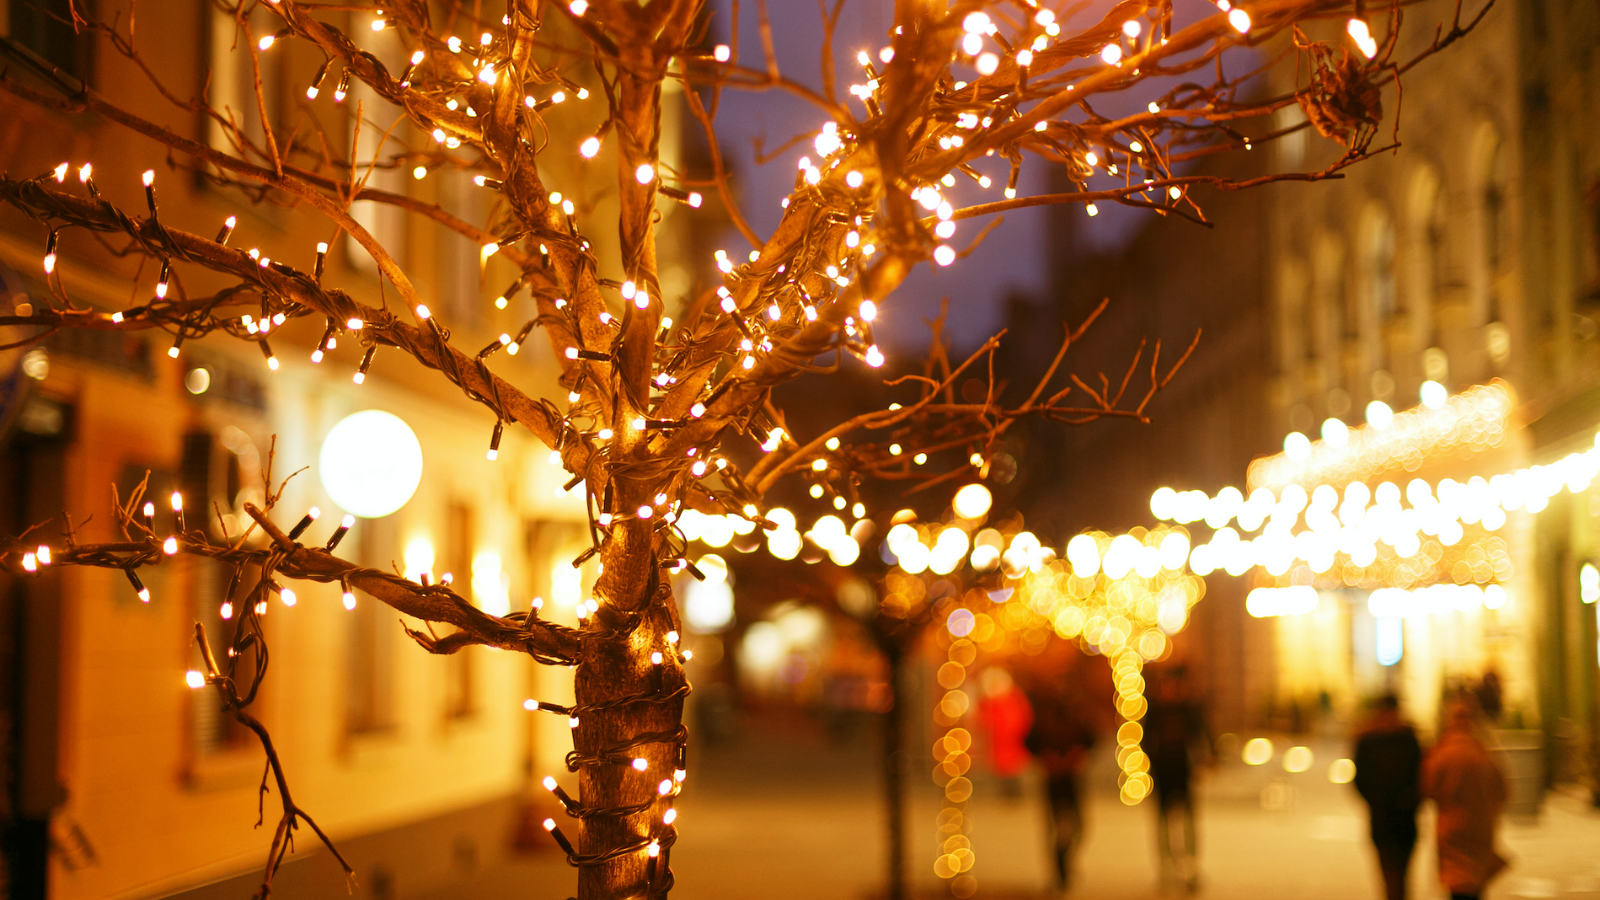 7 things successful people do over the holiday season